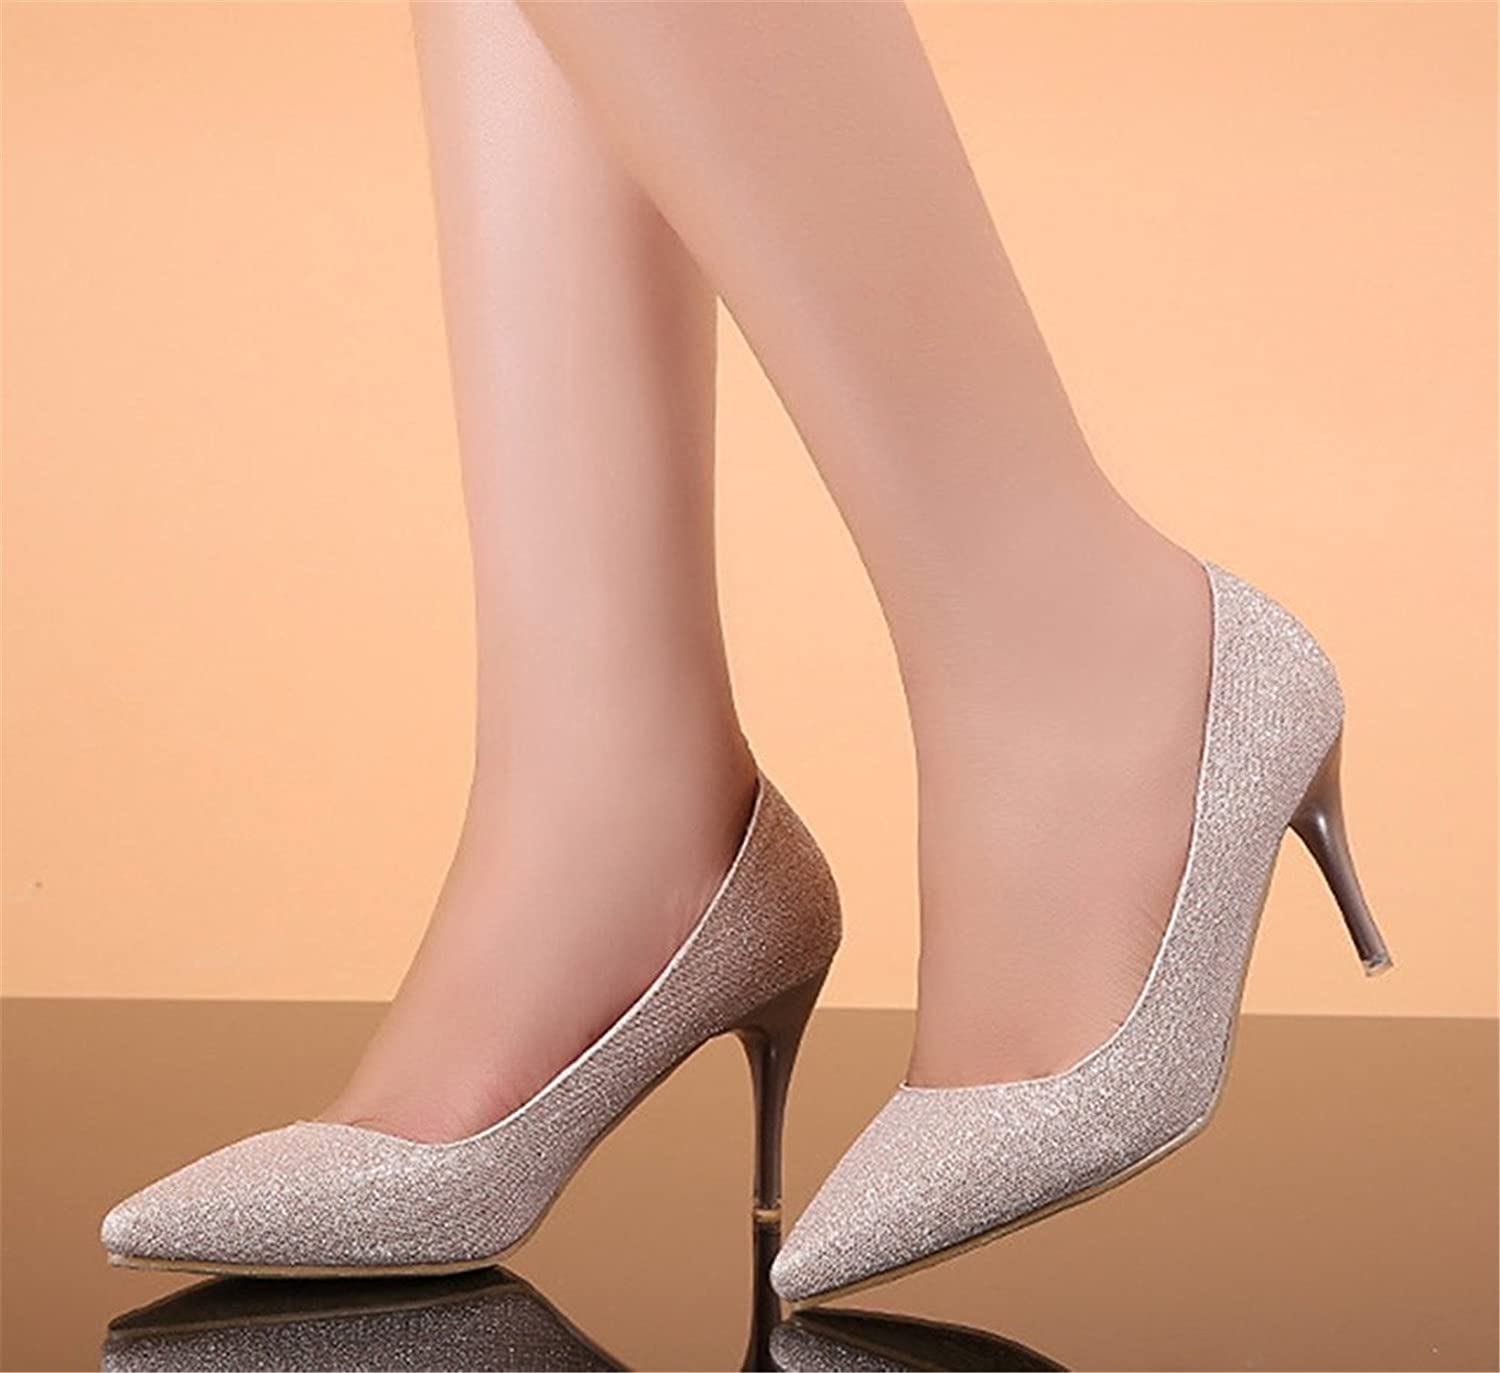 TOGIC Elegant Comfortable Women's Trendy Stylish Pointed Toe Low Cut Dress Slip On Kitten Heeled Pumps Party Bridal Stiletto shoes